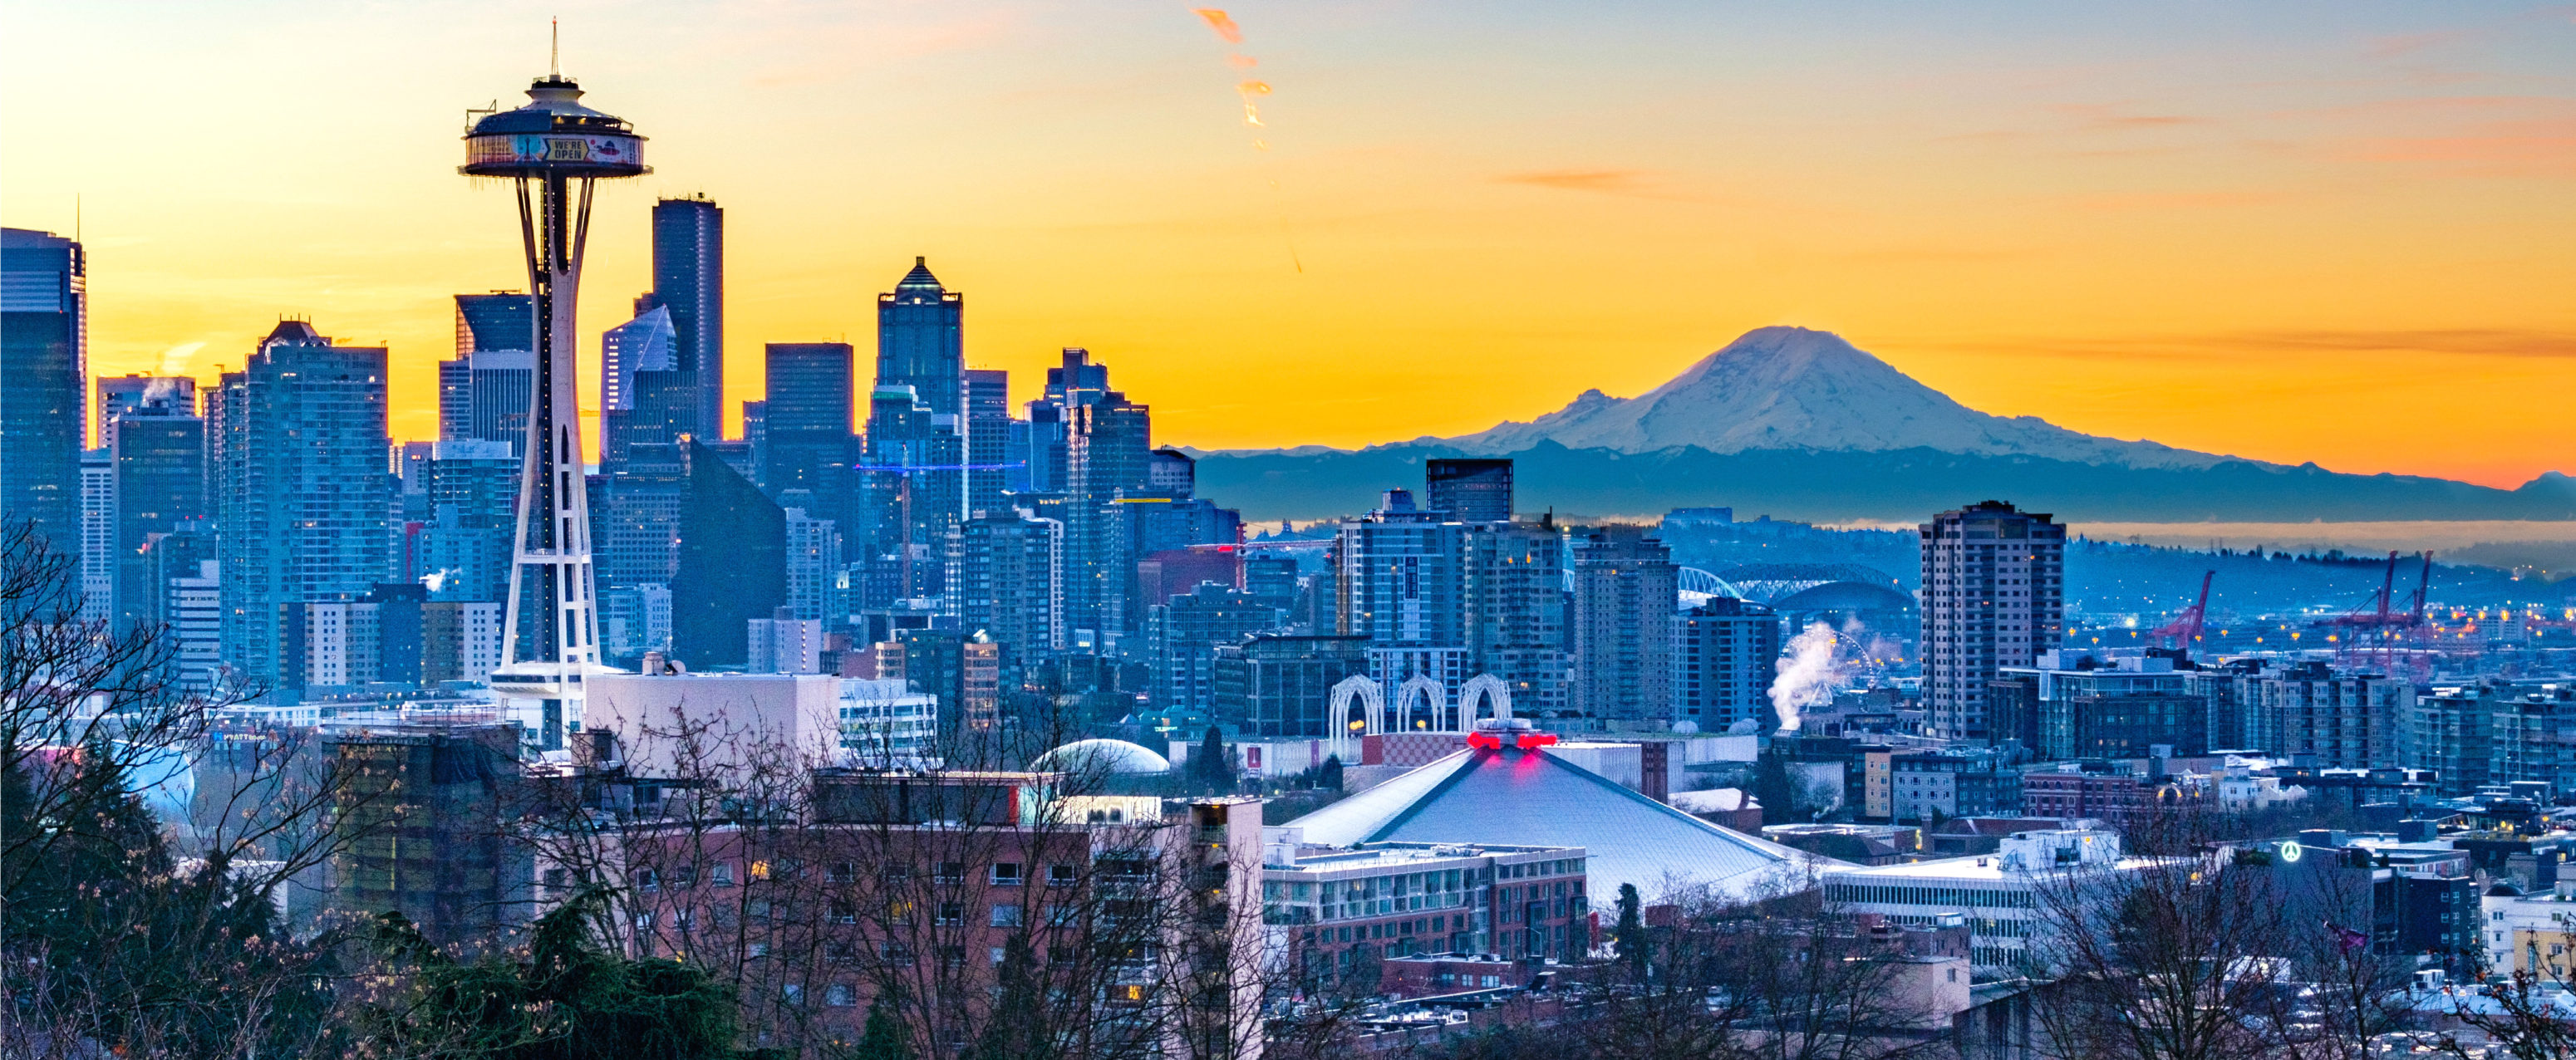 Seattle: Top 6 Things To Do In The Emerald City